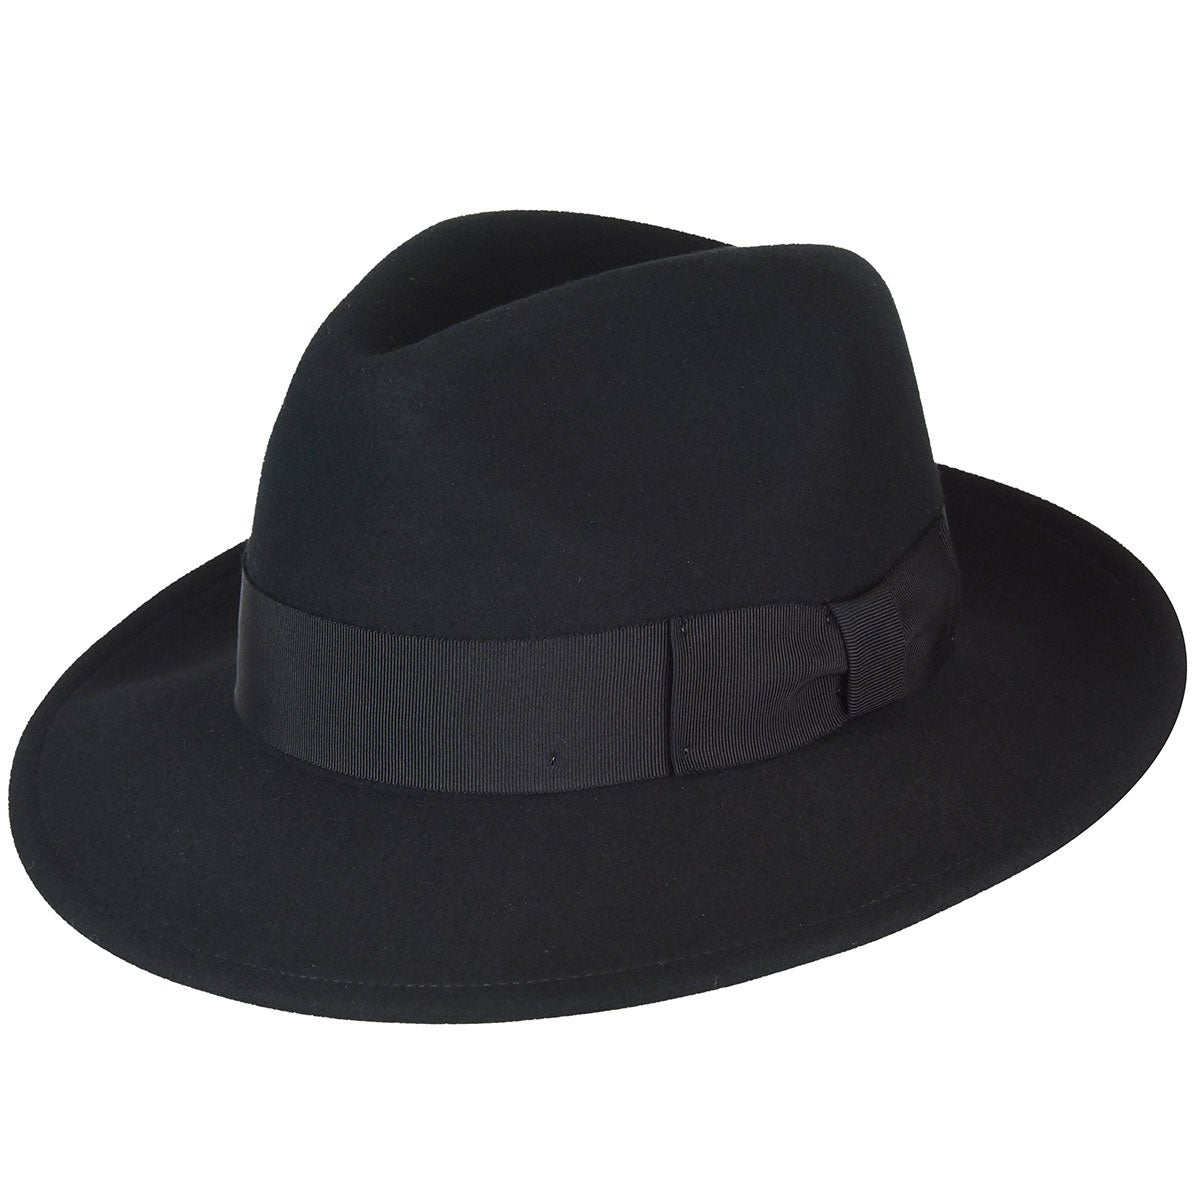 1940s Mens Hats | Fedora, Homburg, Pork Pie Hats Frederick Fedora $60.00 AT vintagedancer.com